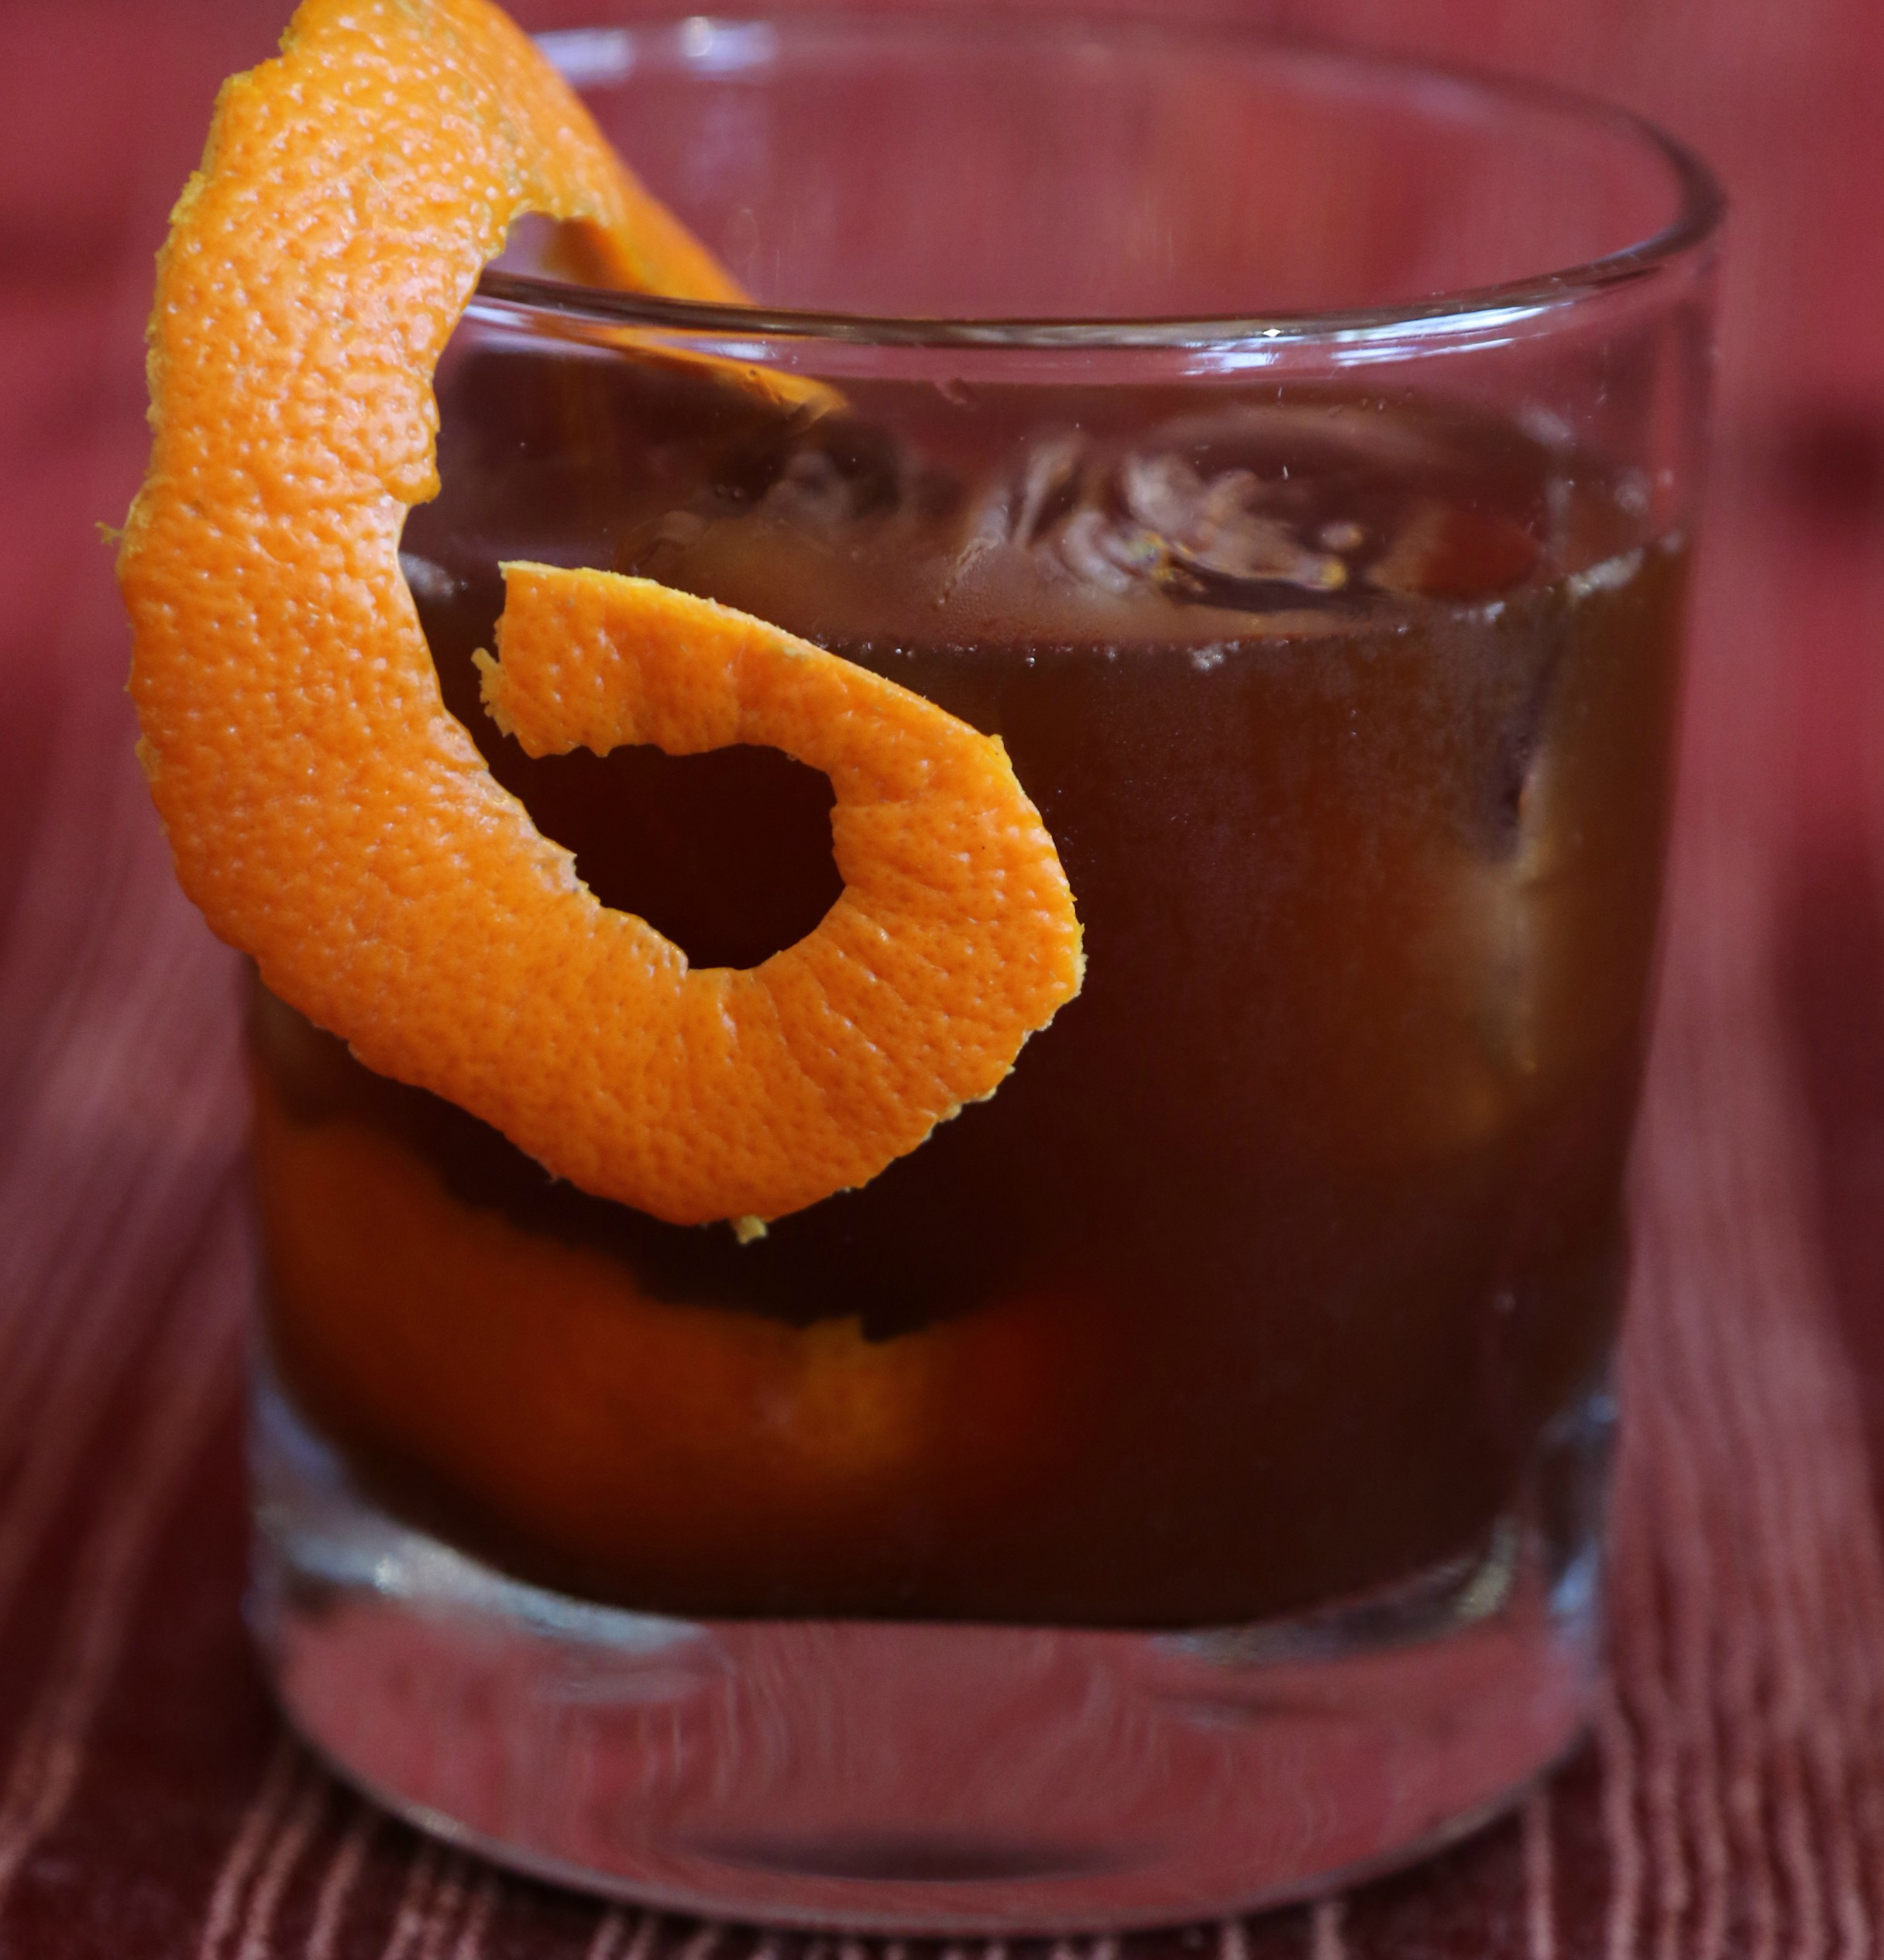 Orange Cardamom Old Fashioned    2 oz  Bourbon  1 TBSP  brewed  Orange Fennel  Tea from The Jasmine Pearl  ½ oz.  Pearl Beverage Co.      Vanilla Rooibos Tea Syrup     2 oz  Bourbon  1 dash  Orange Bitters  1 dash  Cardamom Bitters Shake and Serve in an old fashioned glass. Garnish with orange peel